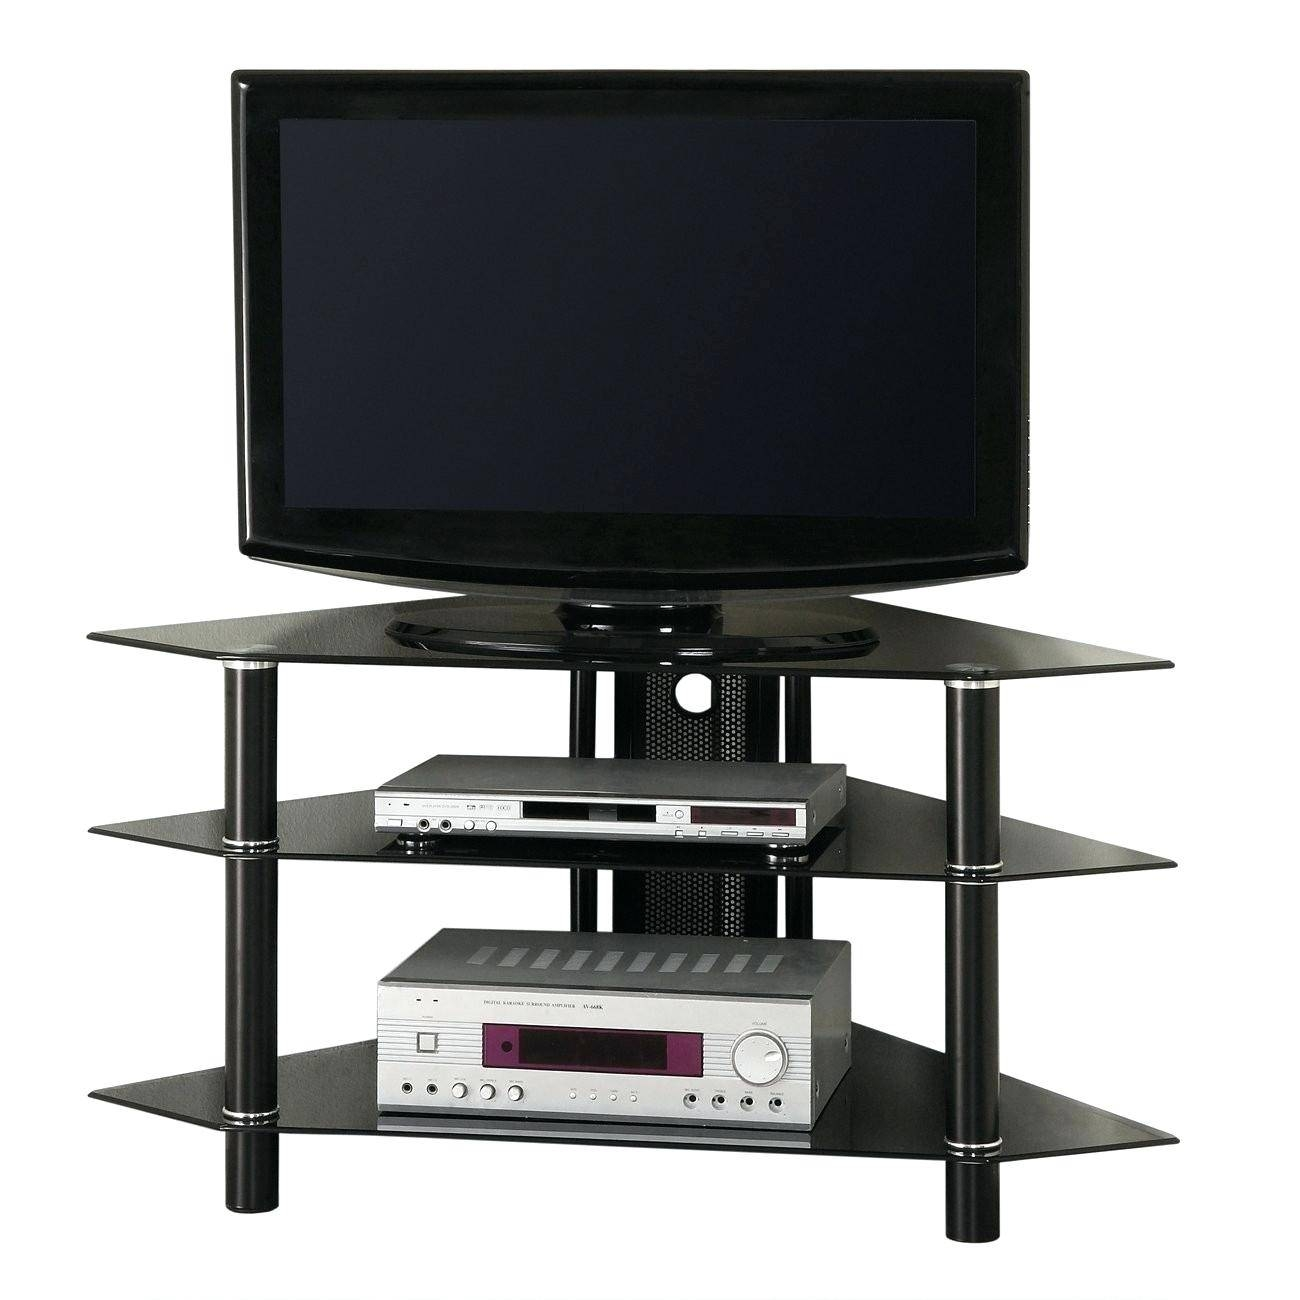 Tv Stand : Small Tv Stands For Small Spaces 122 Chic Small Tv intended for Tv Stands For Small Spaces (Image 10 of 15)